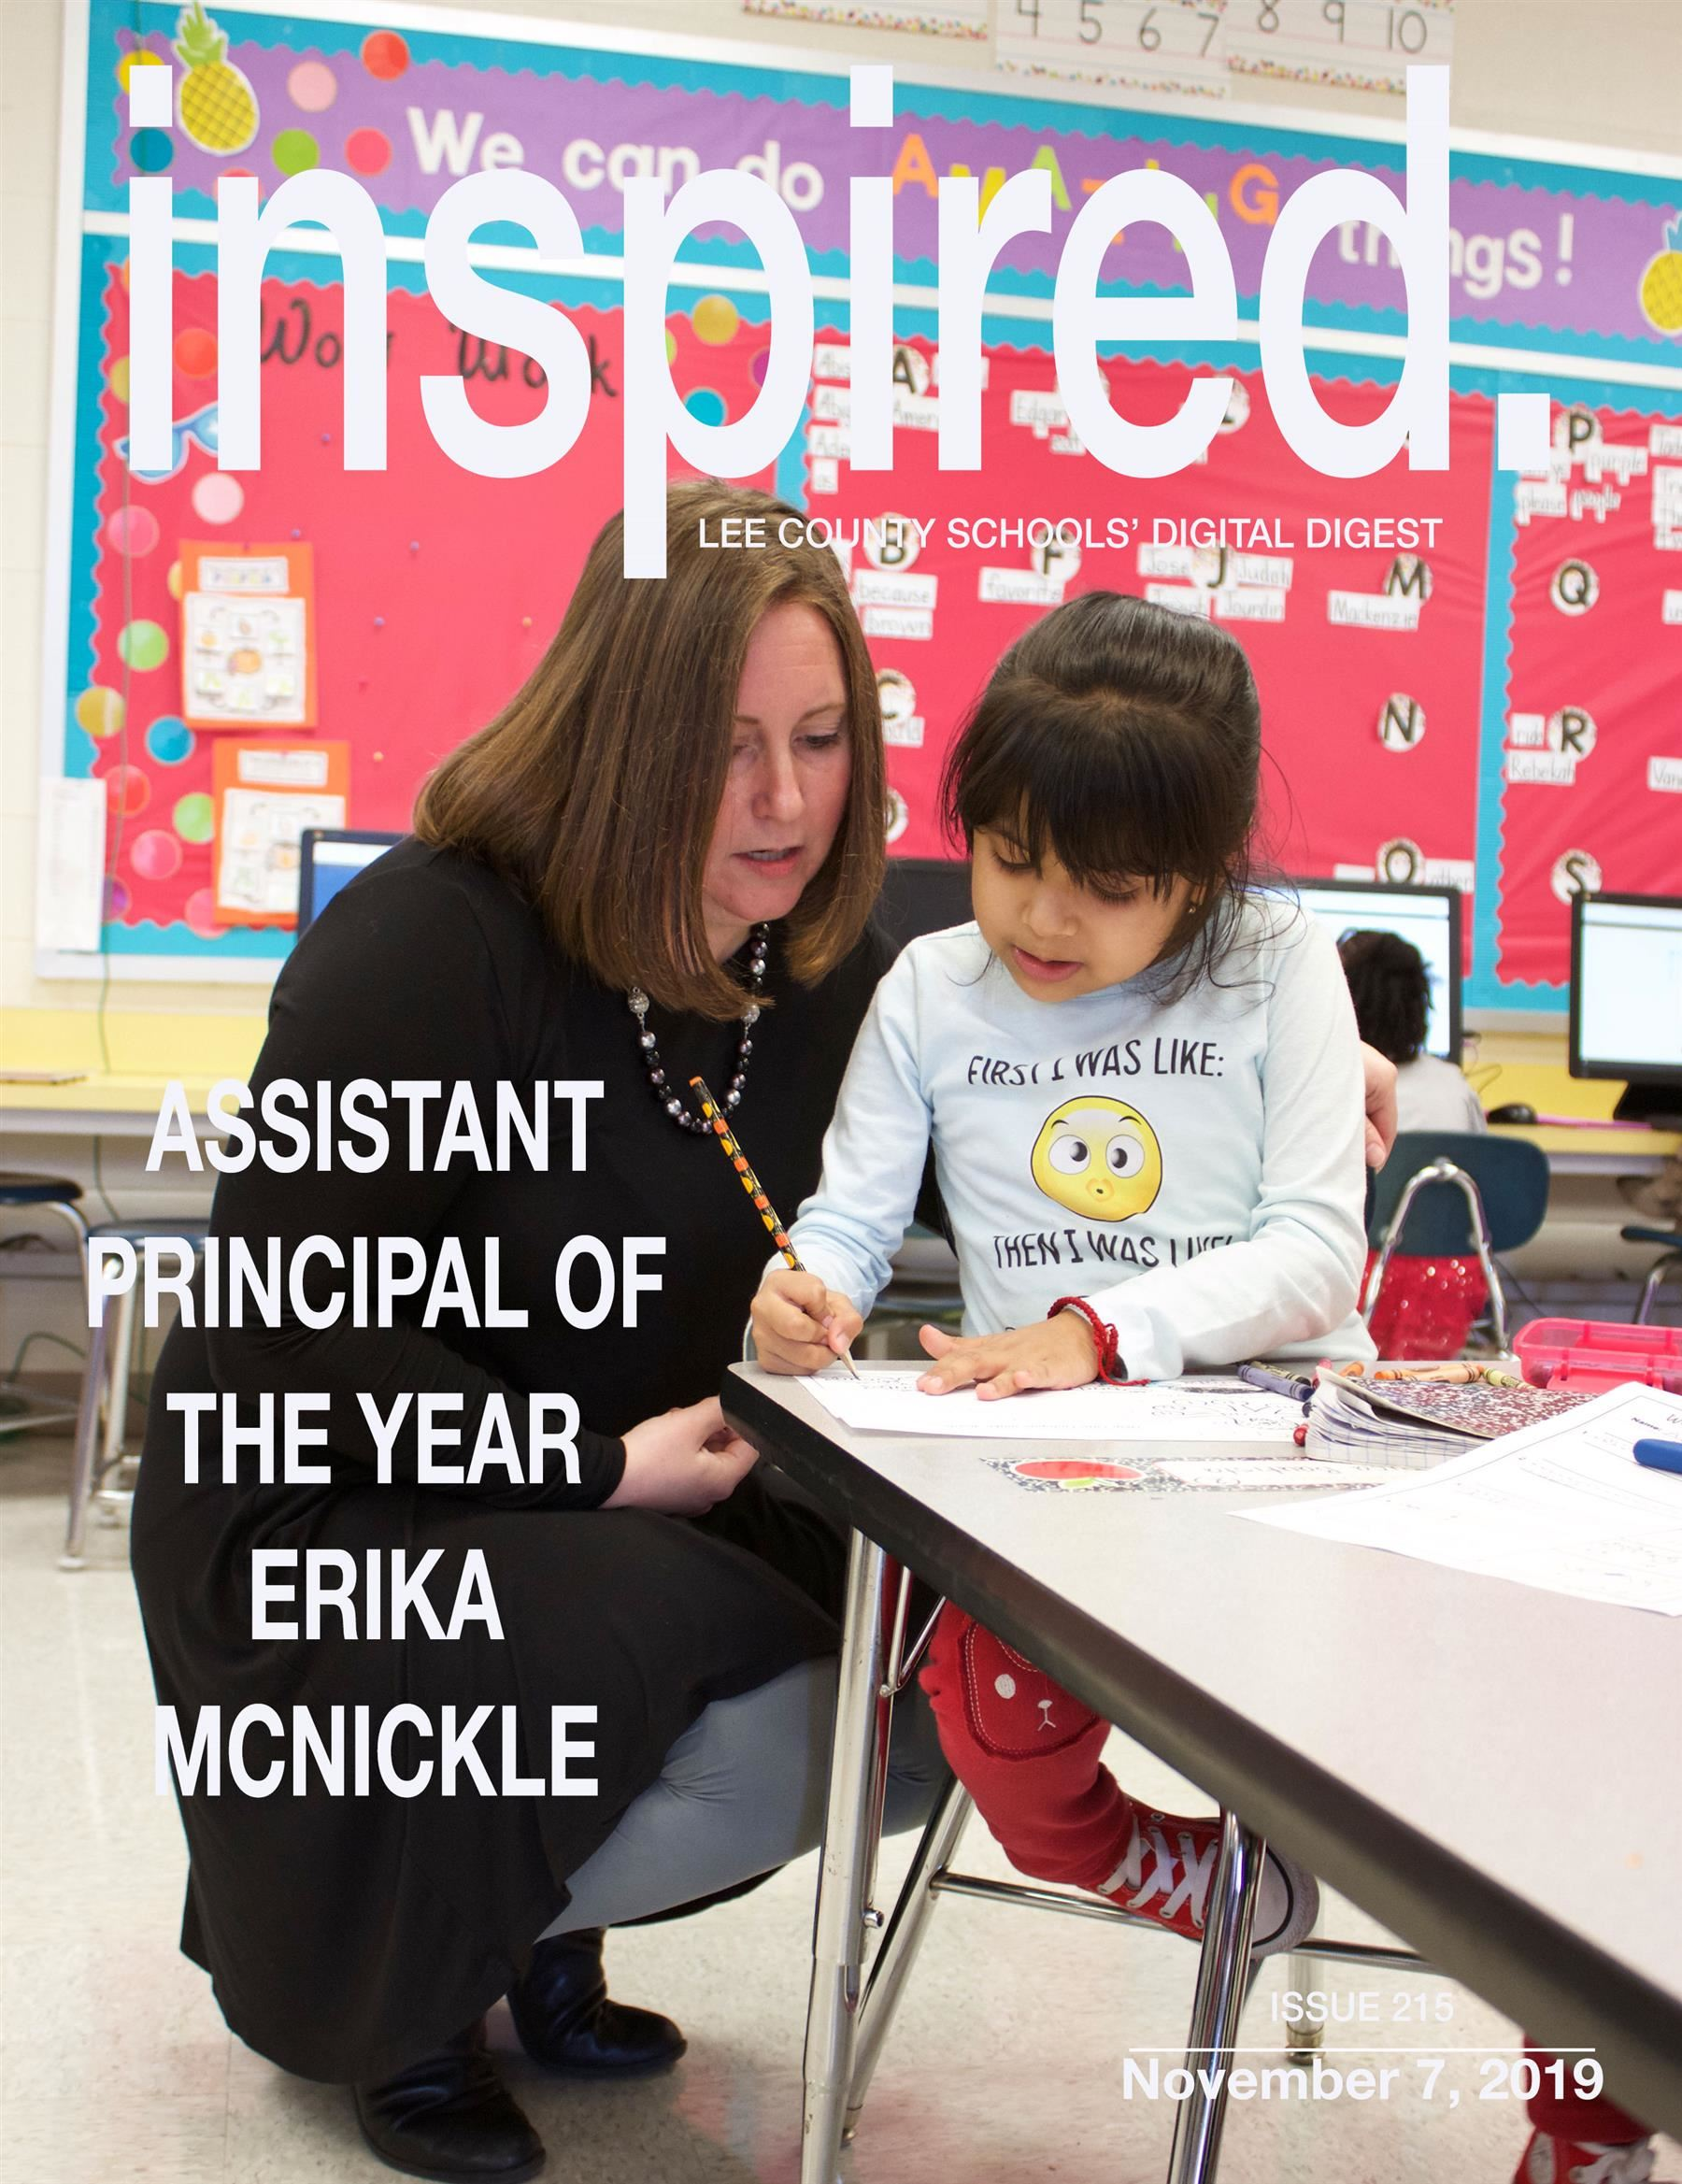 INSPIRED. Assistant Principal of the Year - Erika McNickle